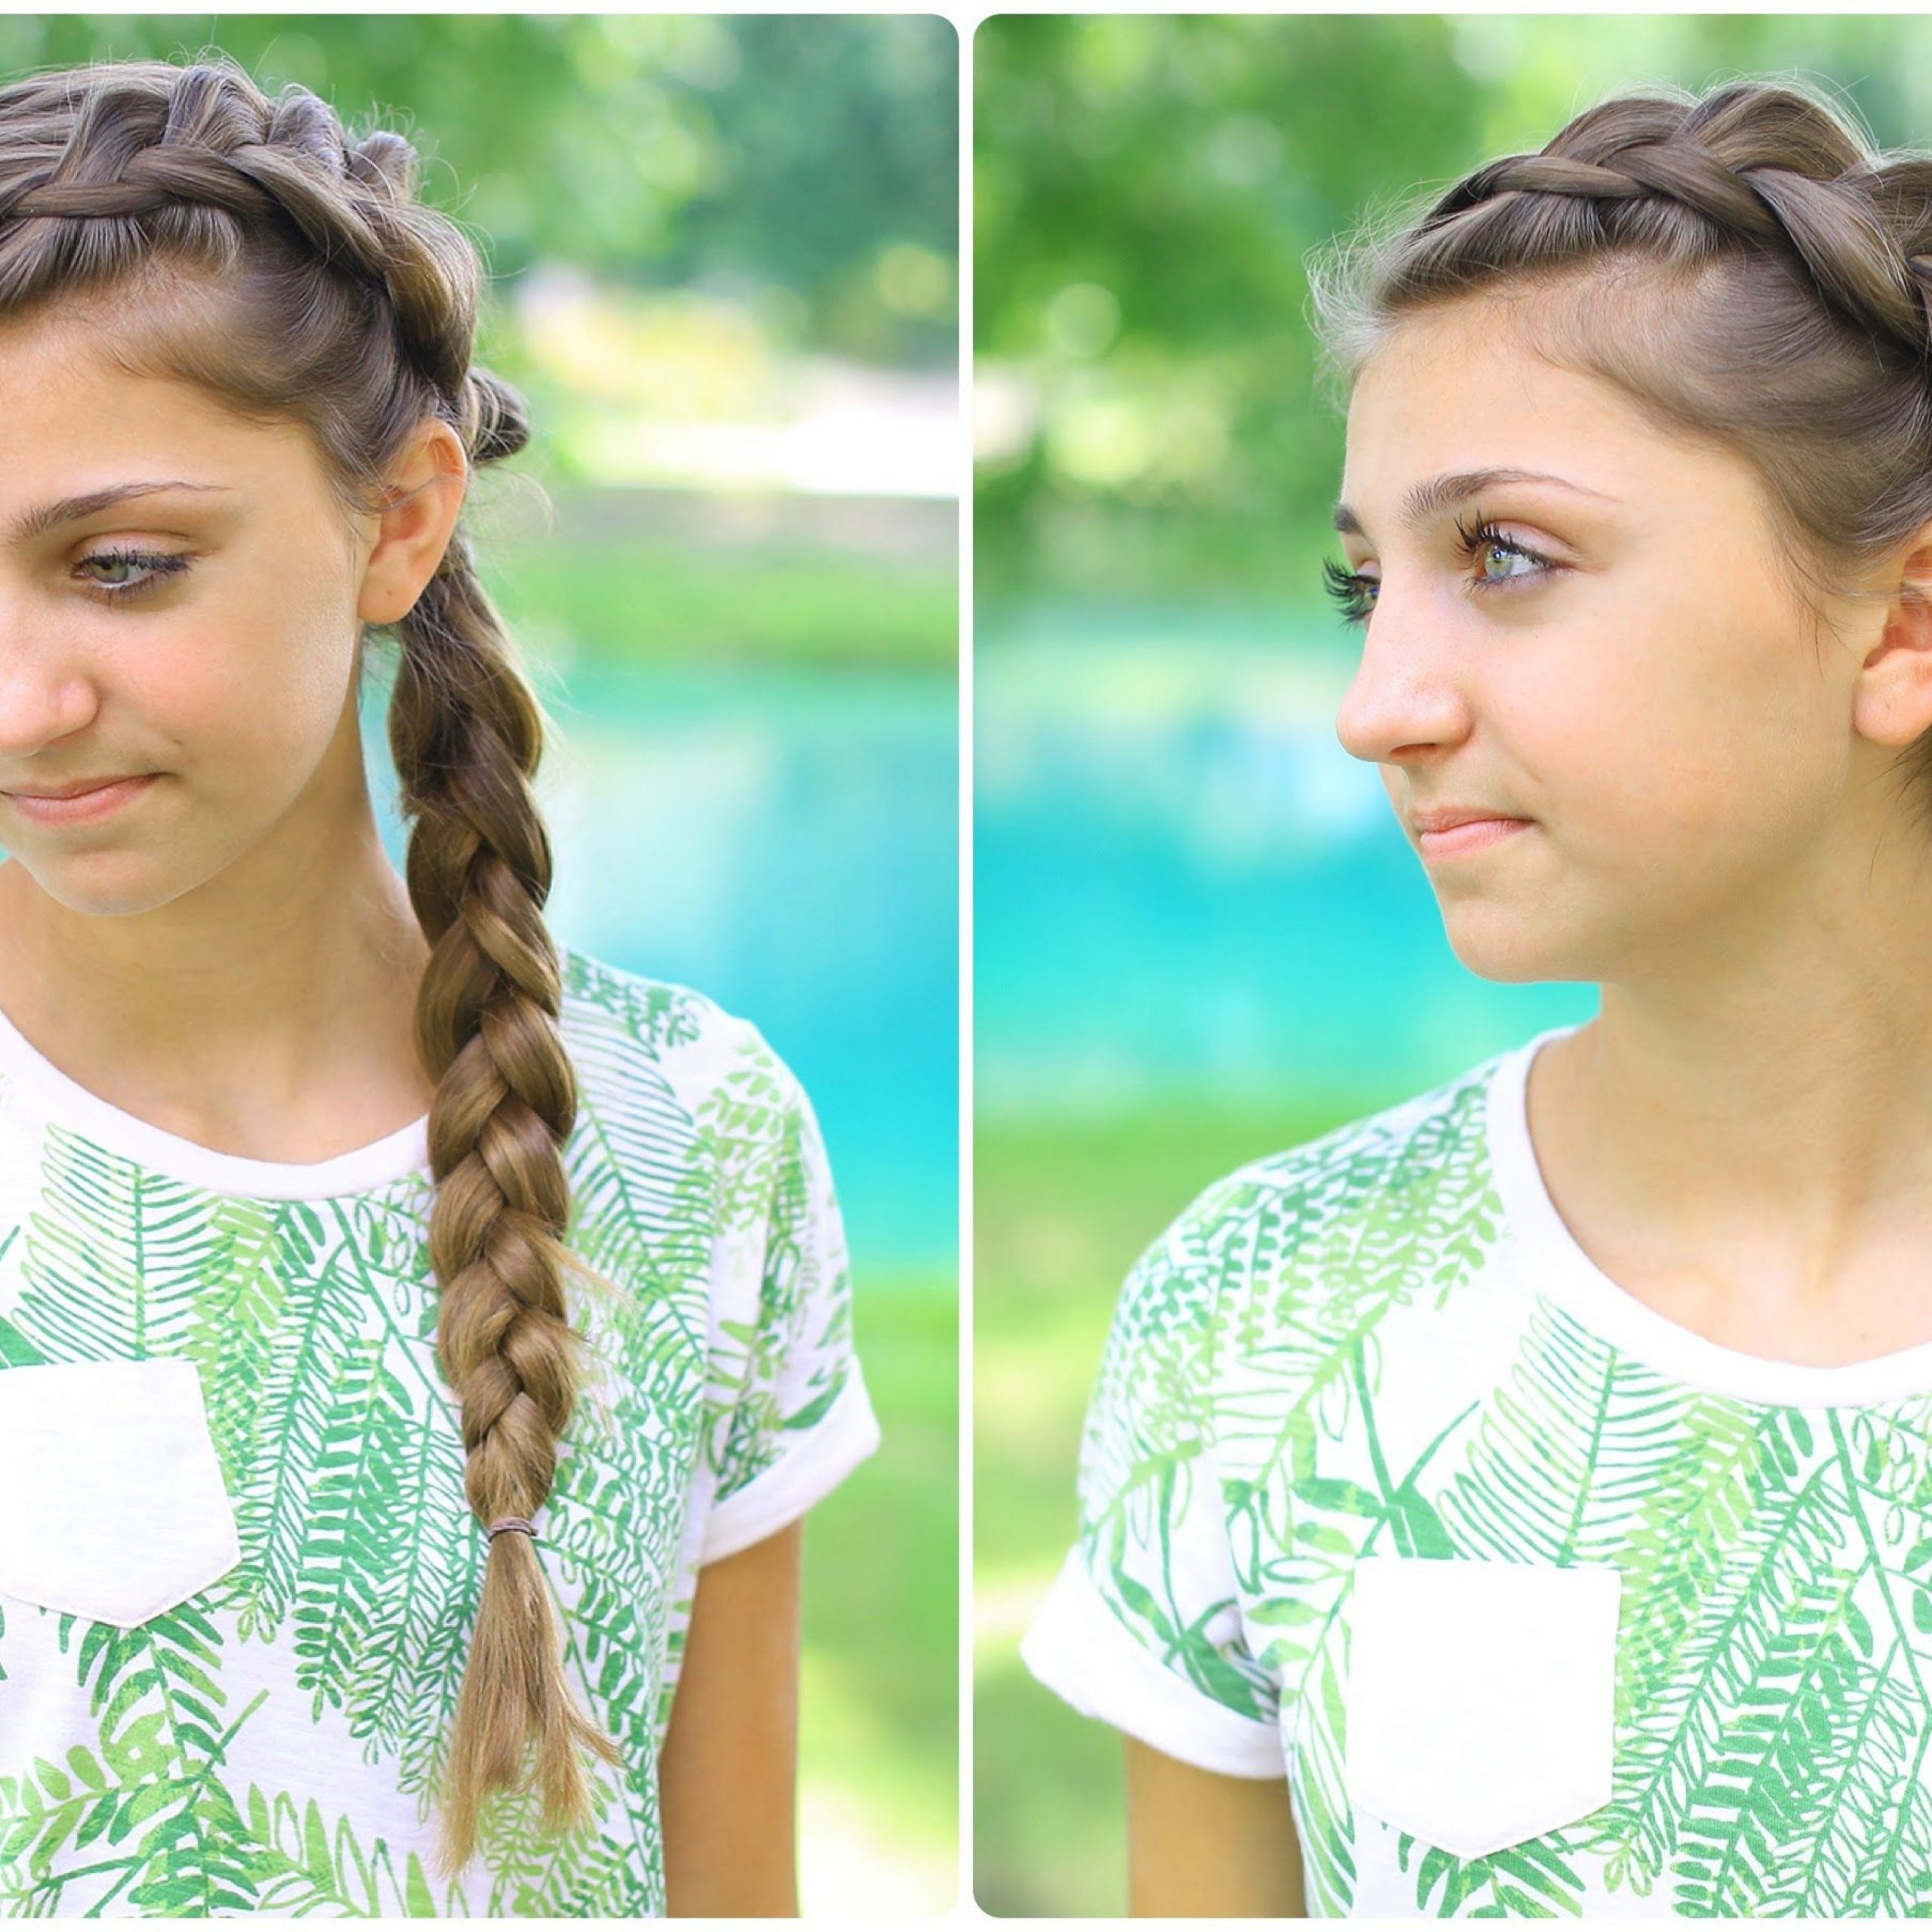 Widely Used Side Dutch Braid Hairstyles Intended For Side Dutch Braid Combo (Gallery 12 of 20)